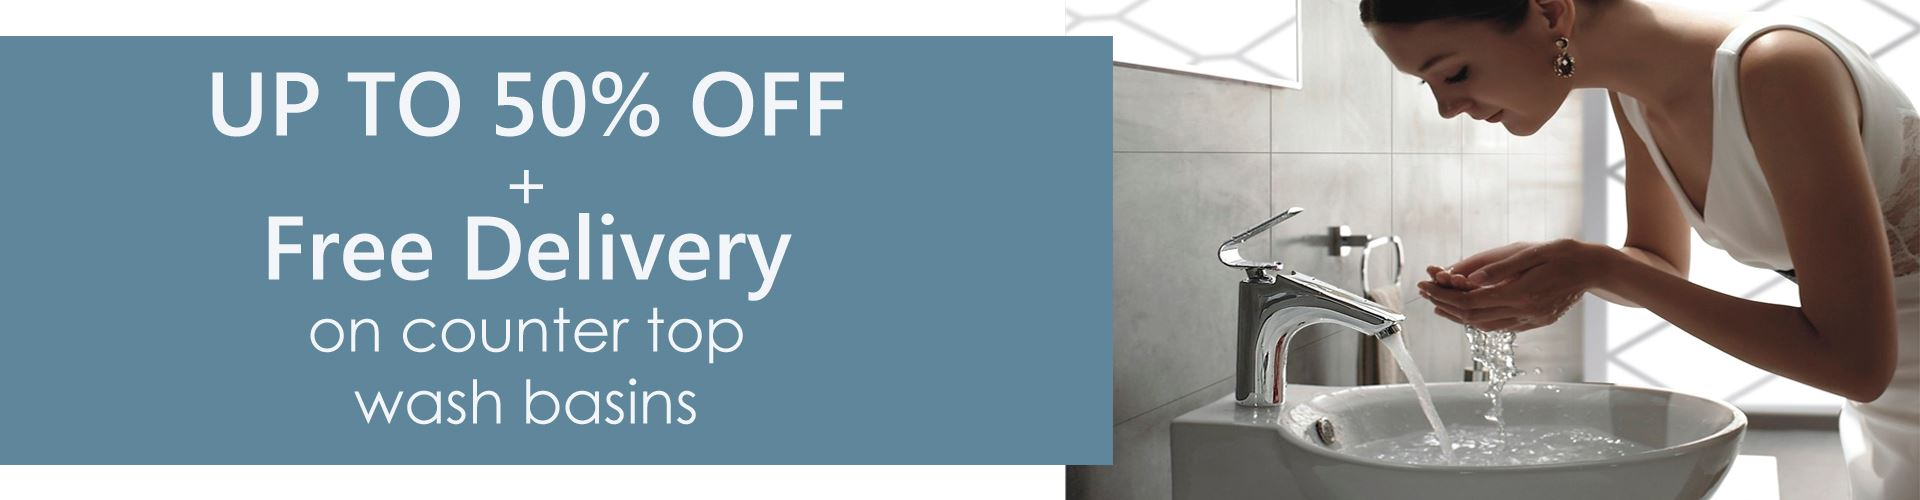 Up to 50% OFF + Free Delivery on Counter Top Basins